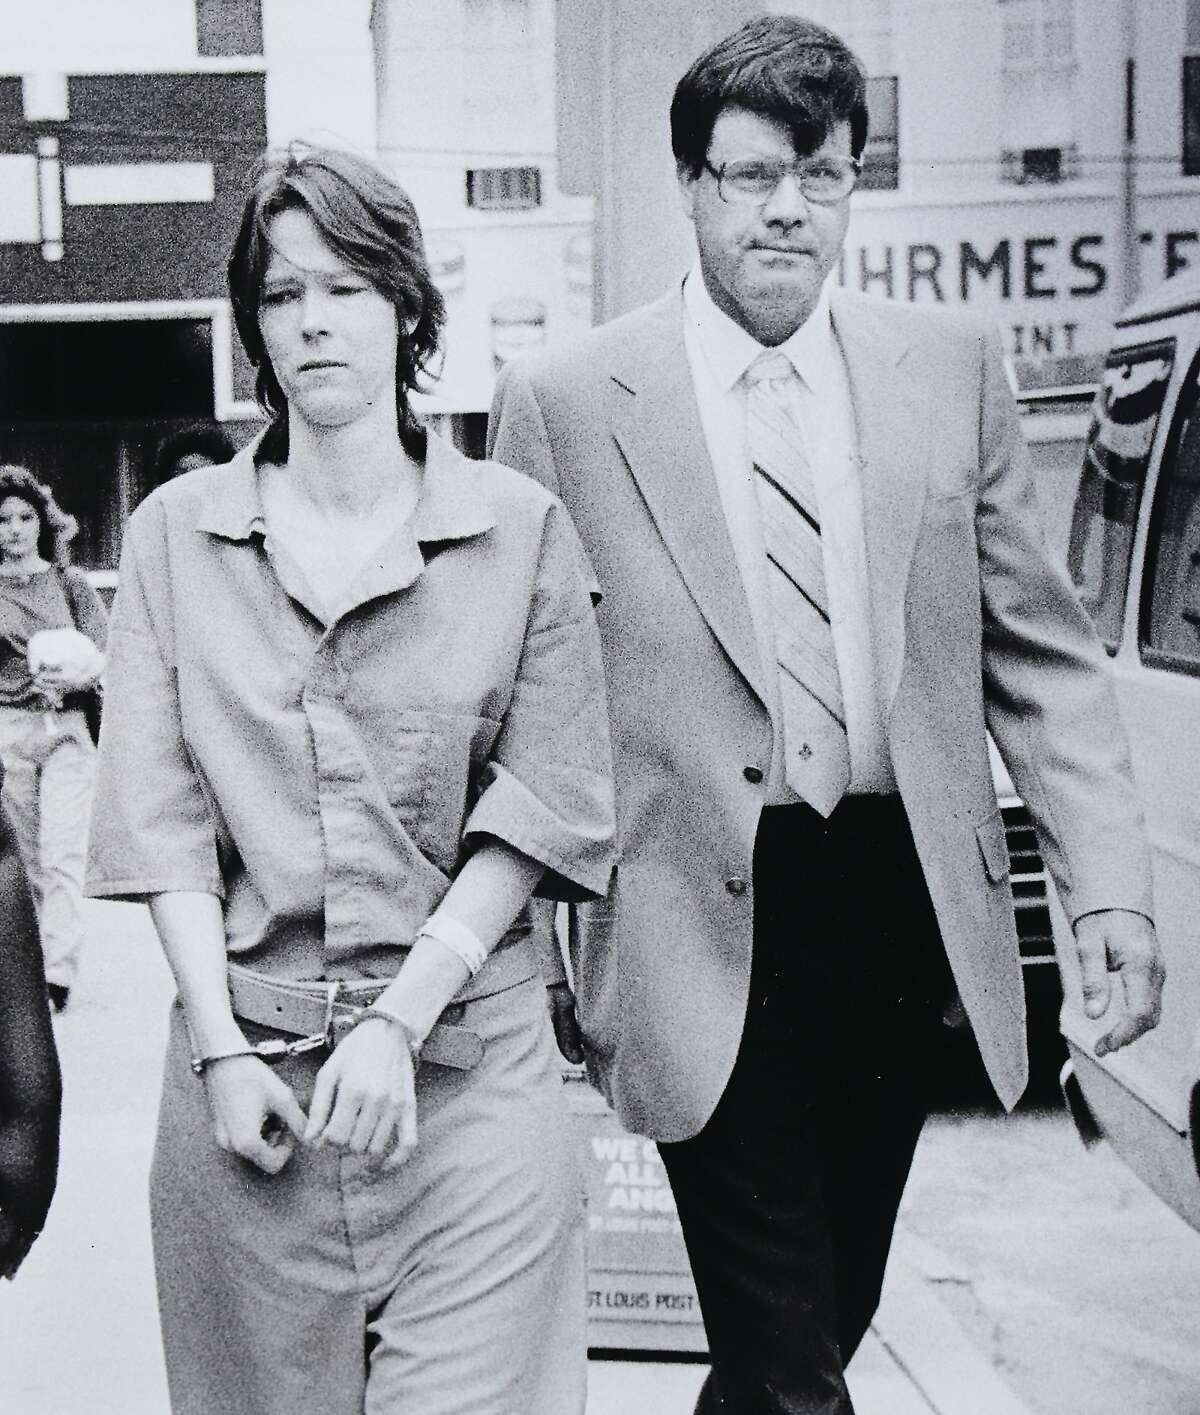 Wearing standard jail clothing, Paula Sims is escorted by a sheriff's deputy at Madison County Courthouse.